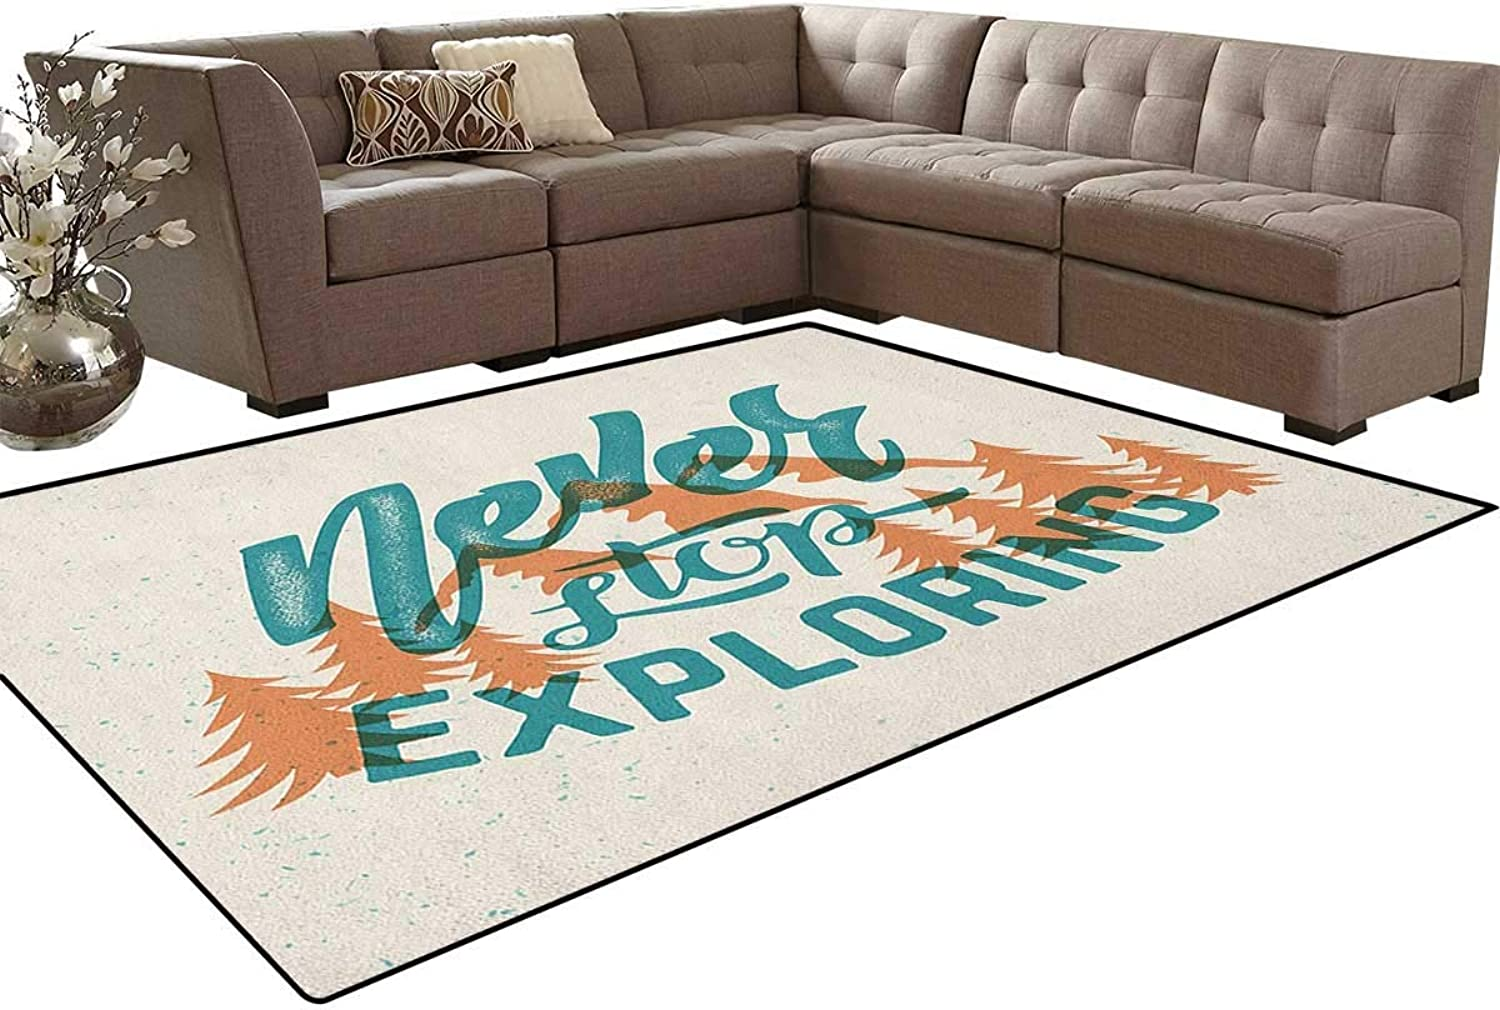 Hand Lettering Quote on Traveling with Mountain and Forest Silhouette Floor Mat Rug Indoor Front Door Kitchen and Living Room Bedroom Mats Rubber Non Slip